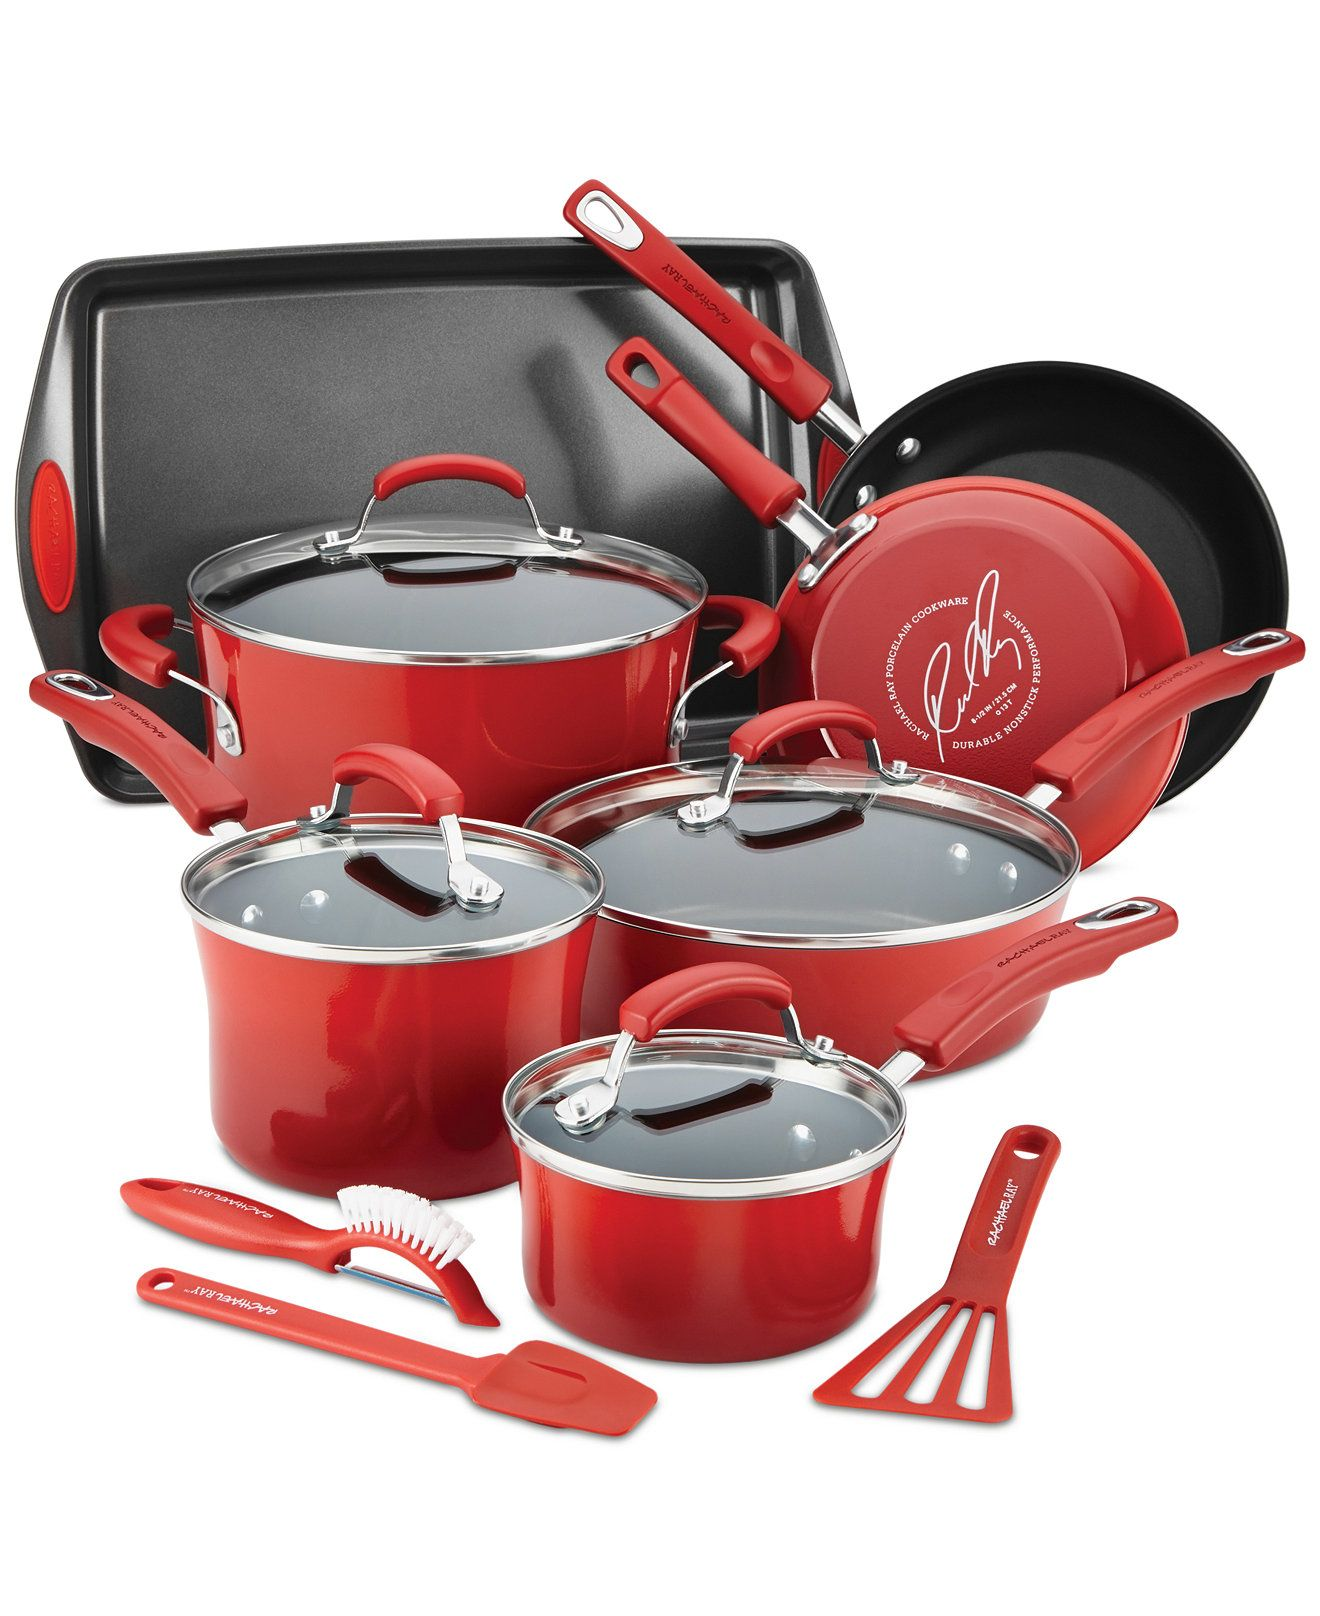 rachael ray 14 piece nonstick cookware set sale clearance